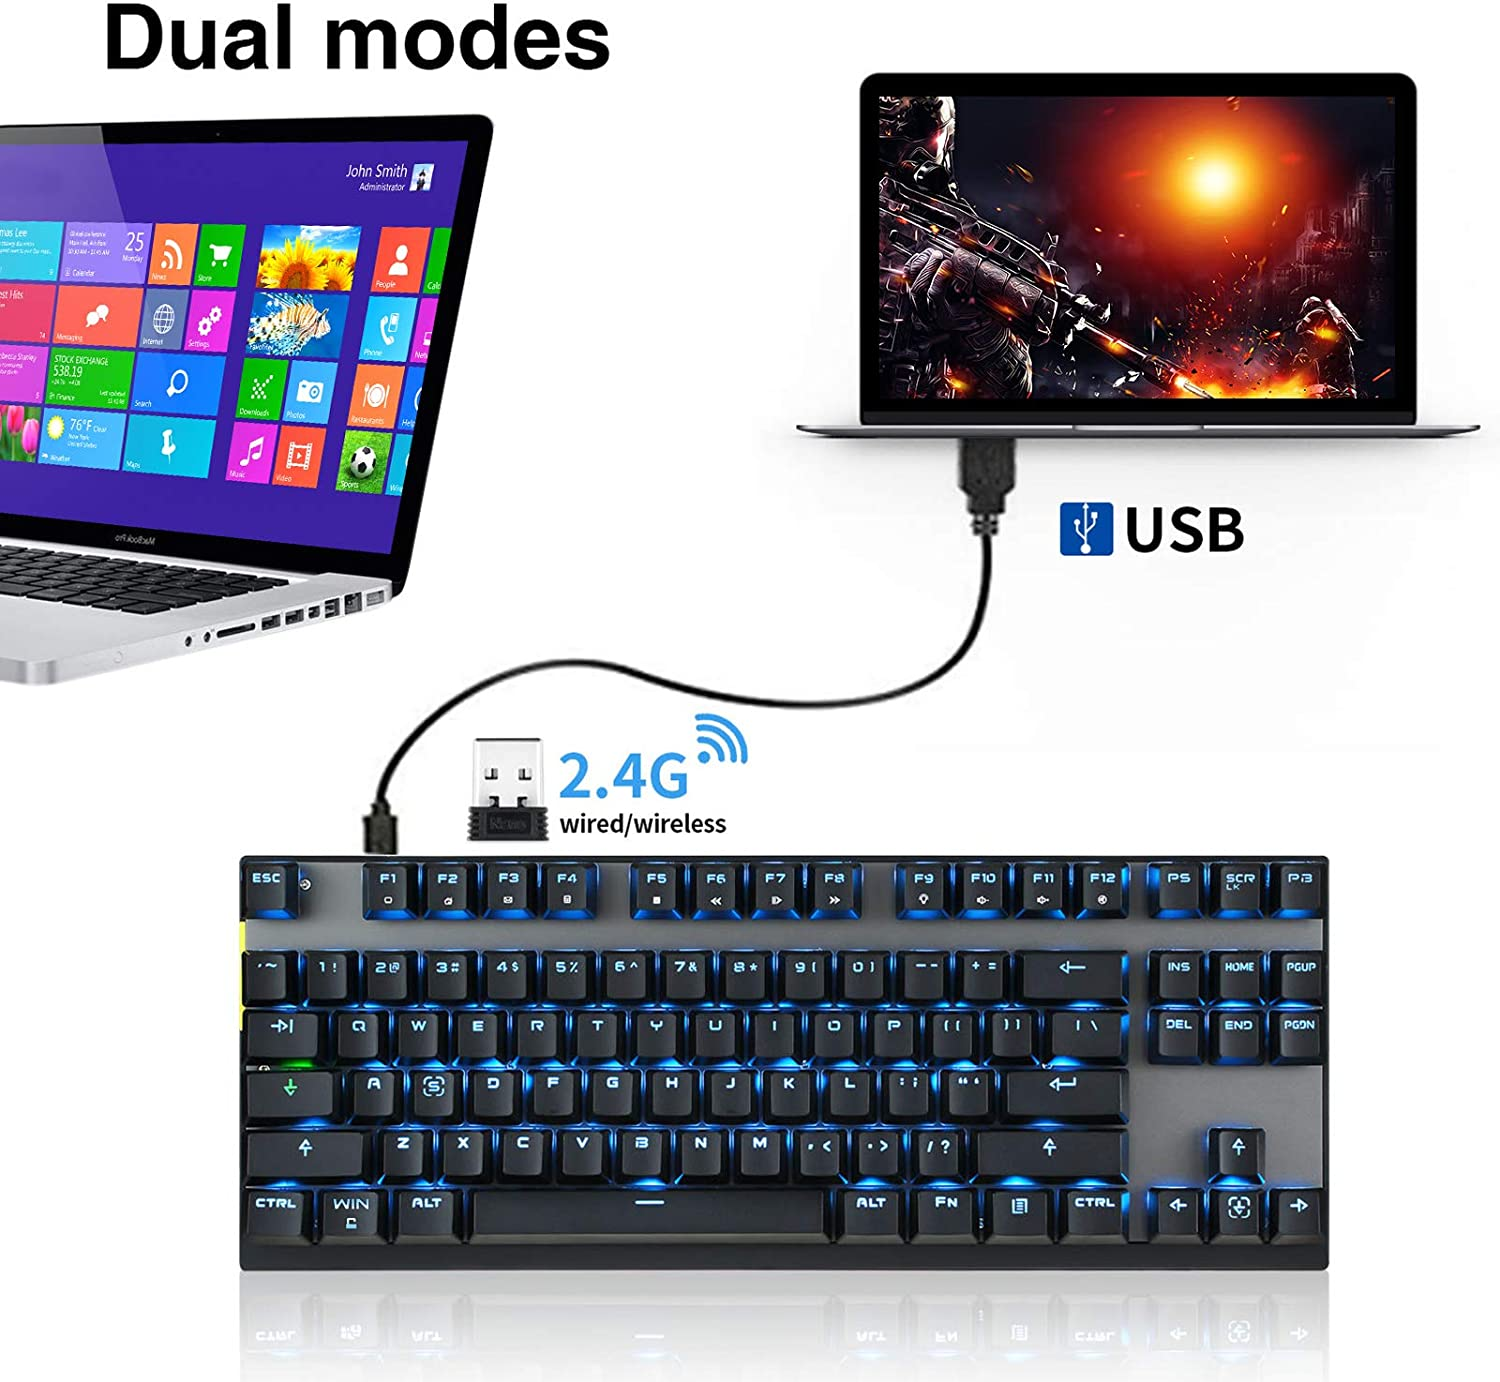 2.4G Wireless Dual Mode Motospeed Gaming Mechanical Keyboard 87 Key LED Backlit Anti-Ghosting USB Receiver For PC Computer Gamer